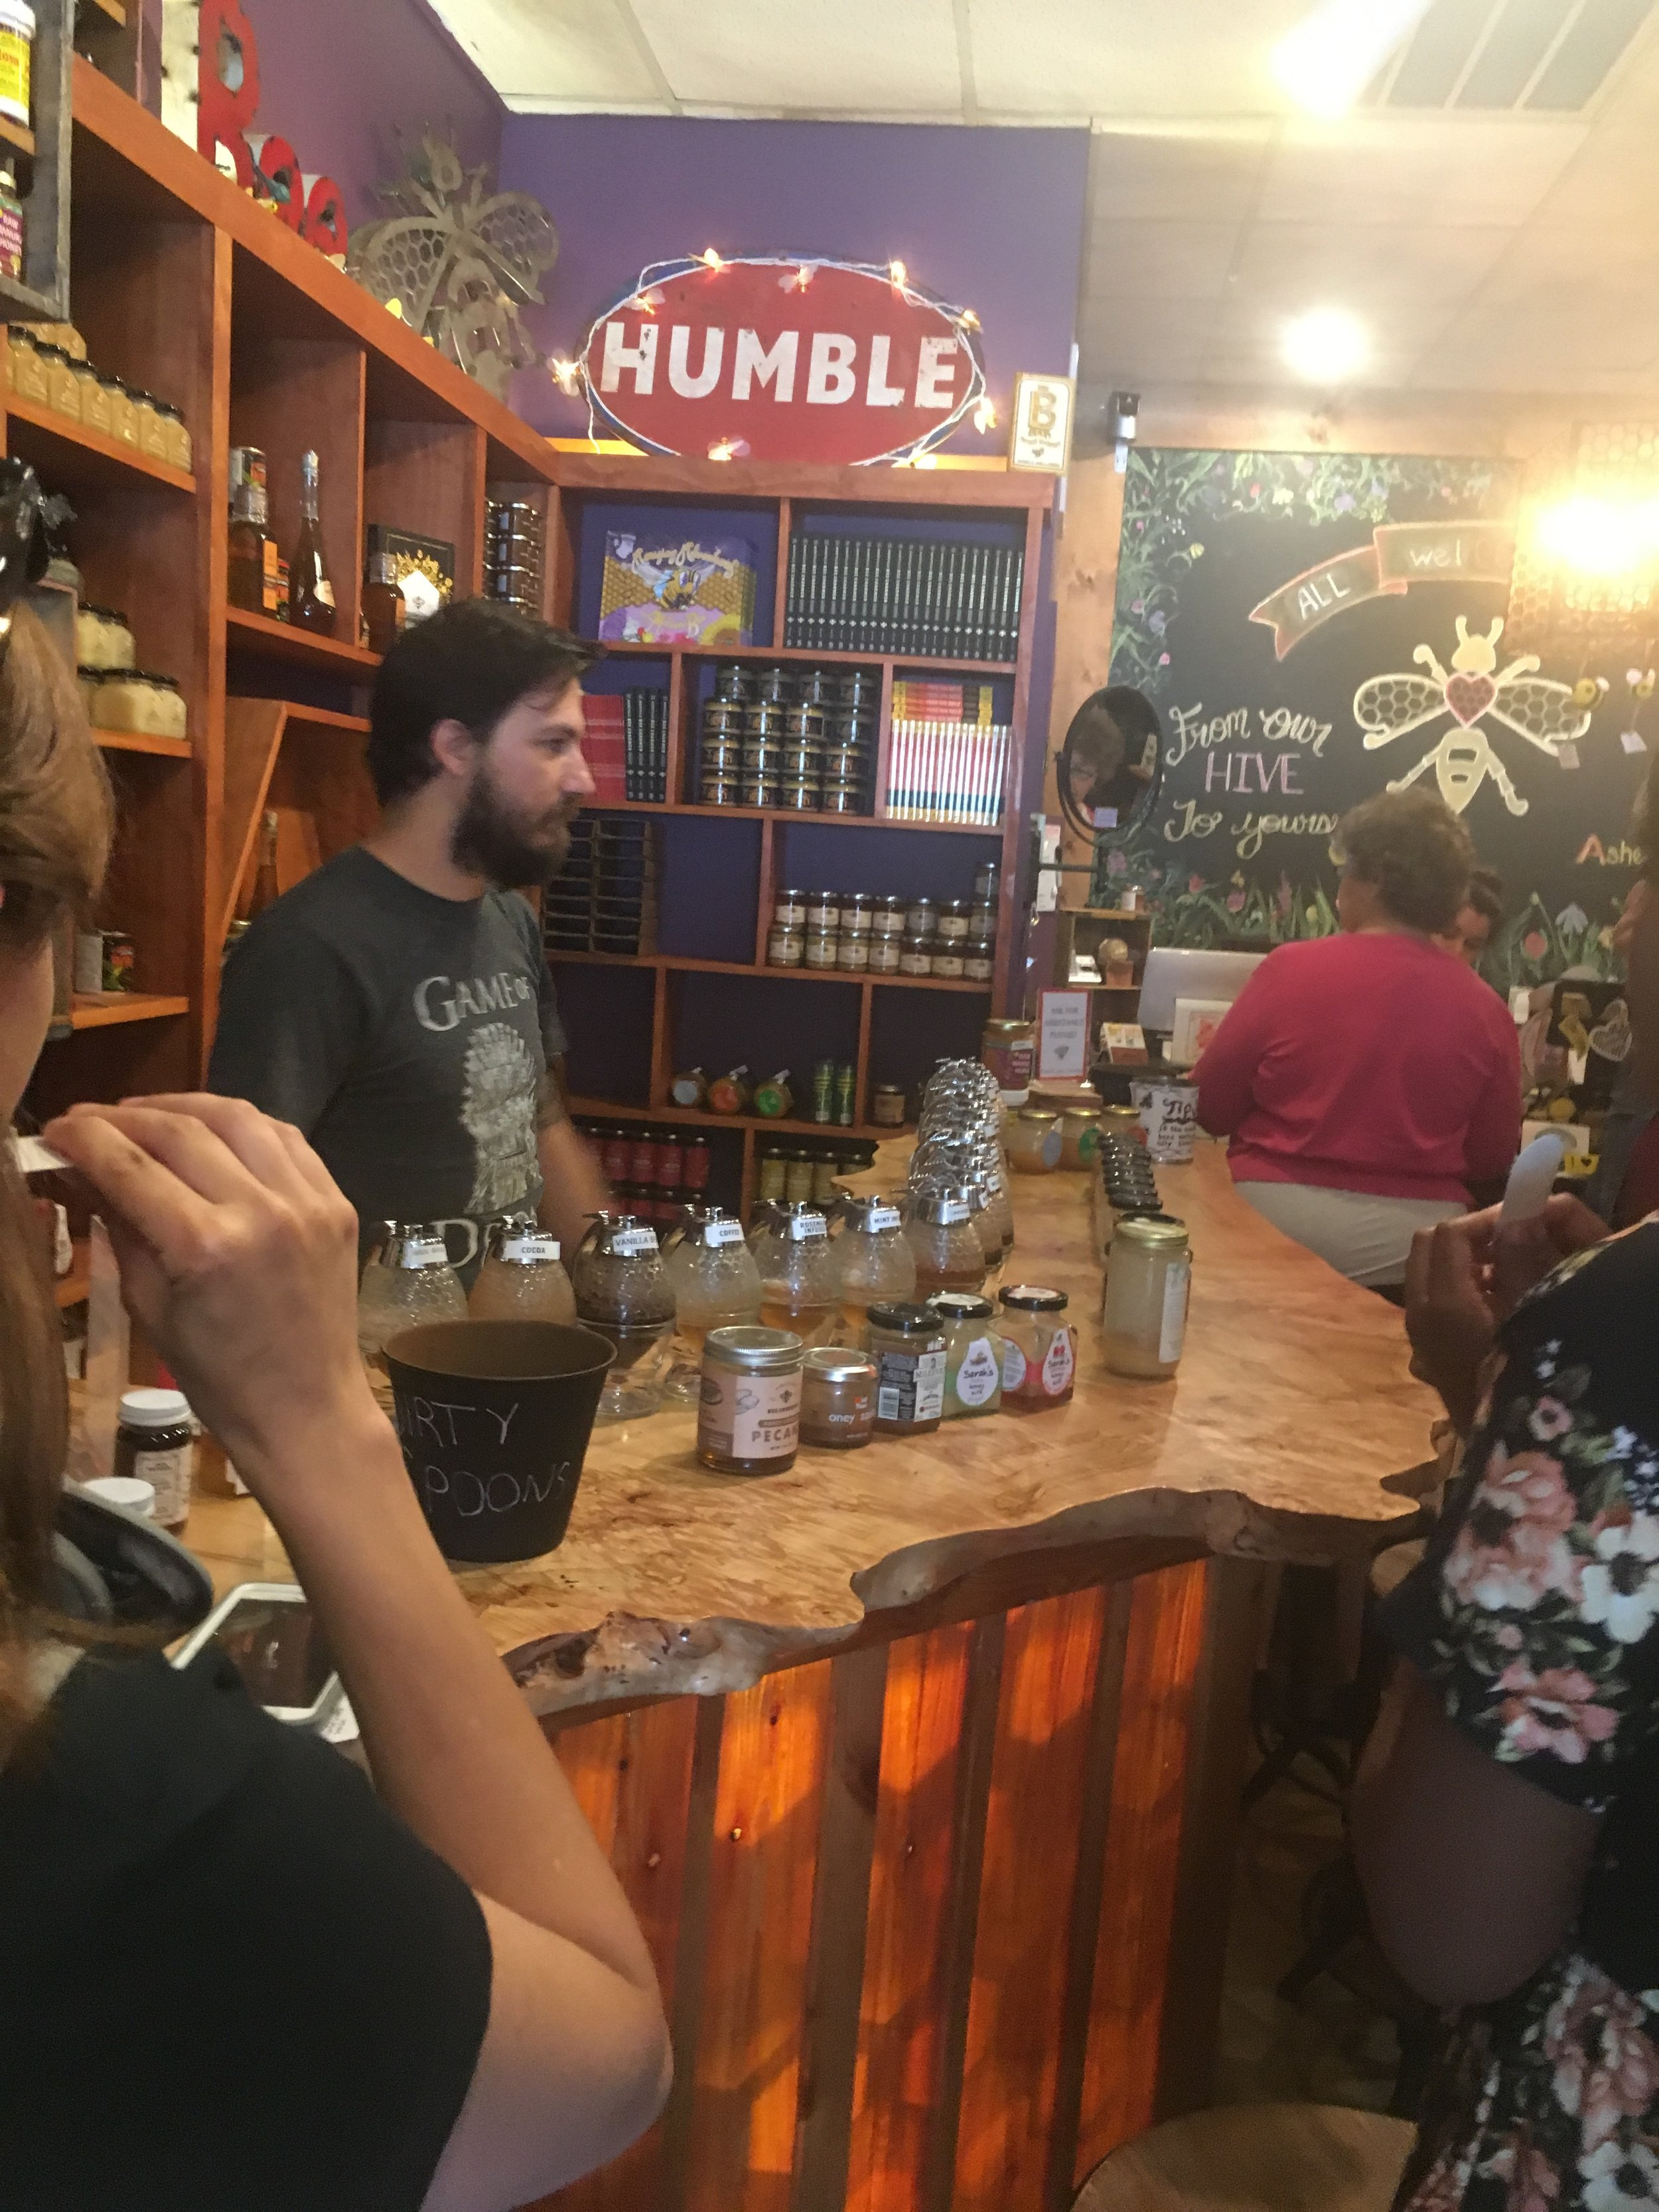 Honey tasting bar complete with a staff member to assist you with all your sampling needs.